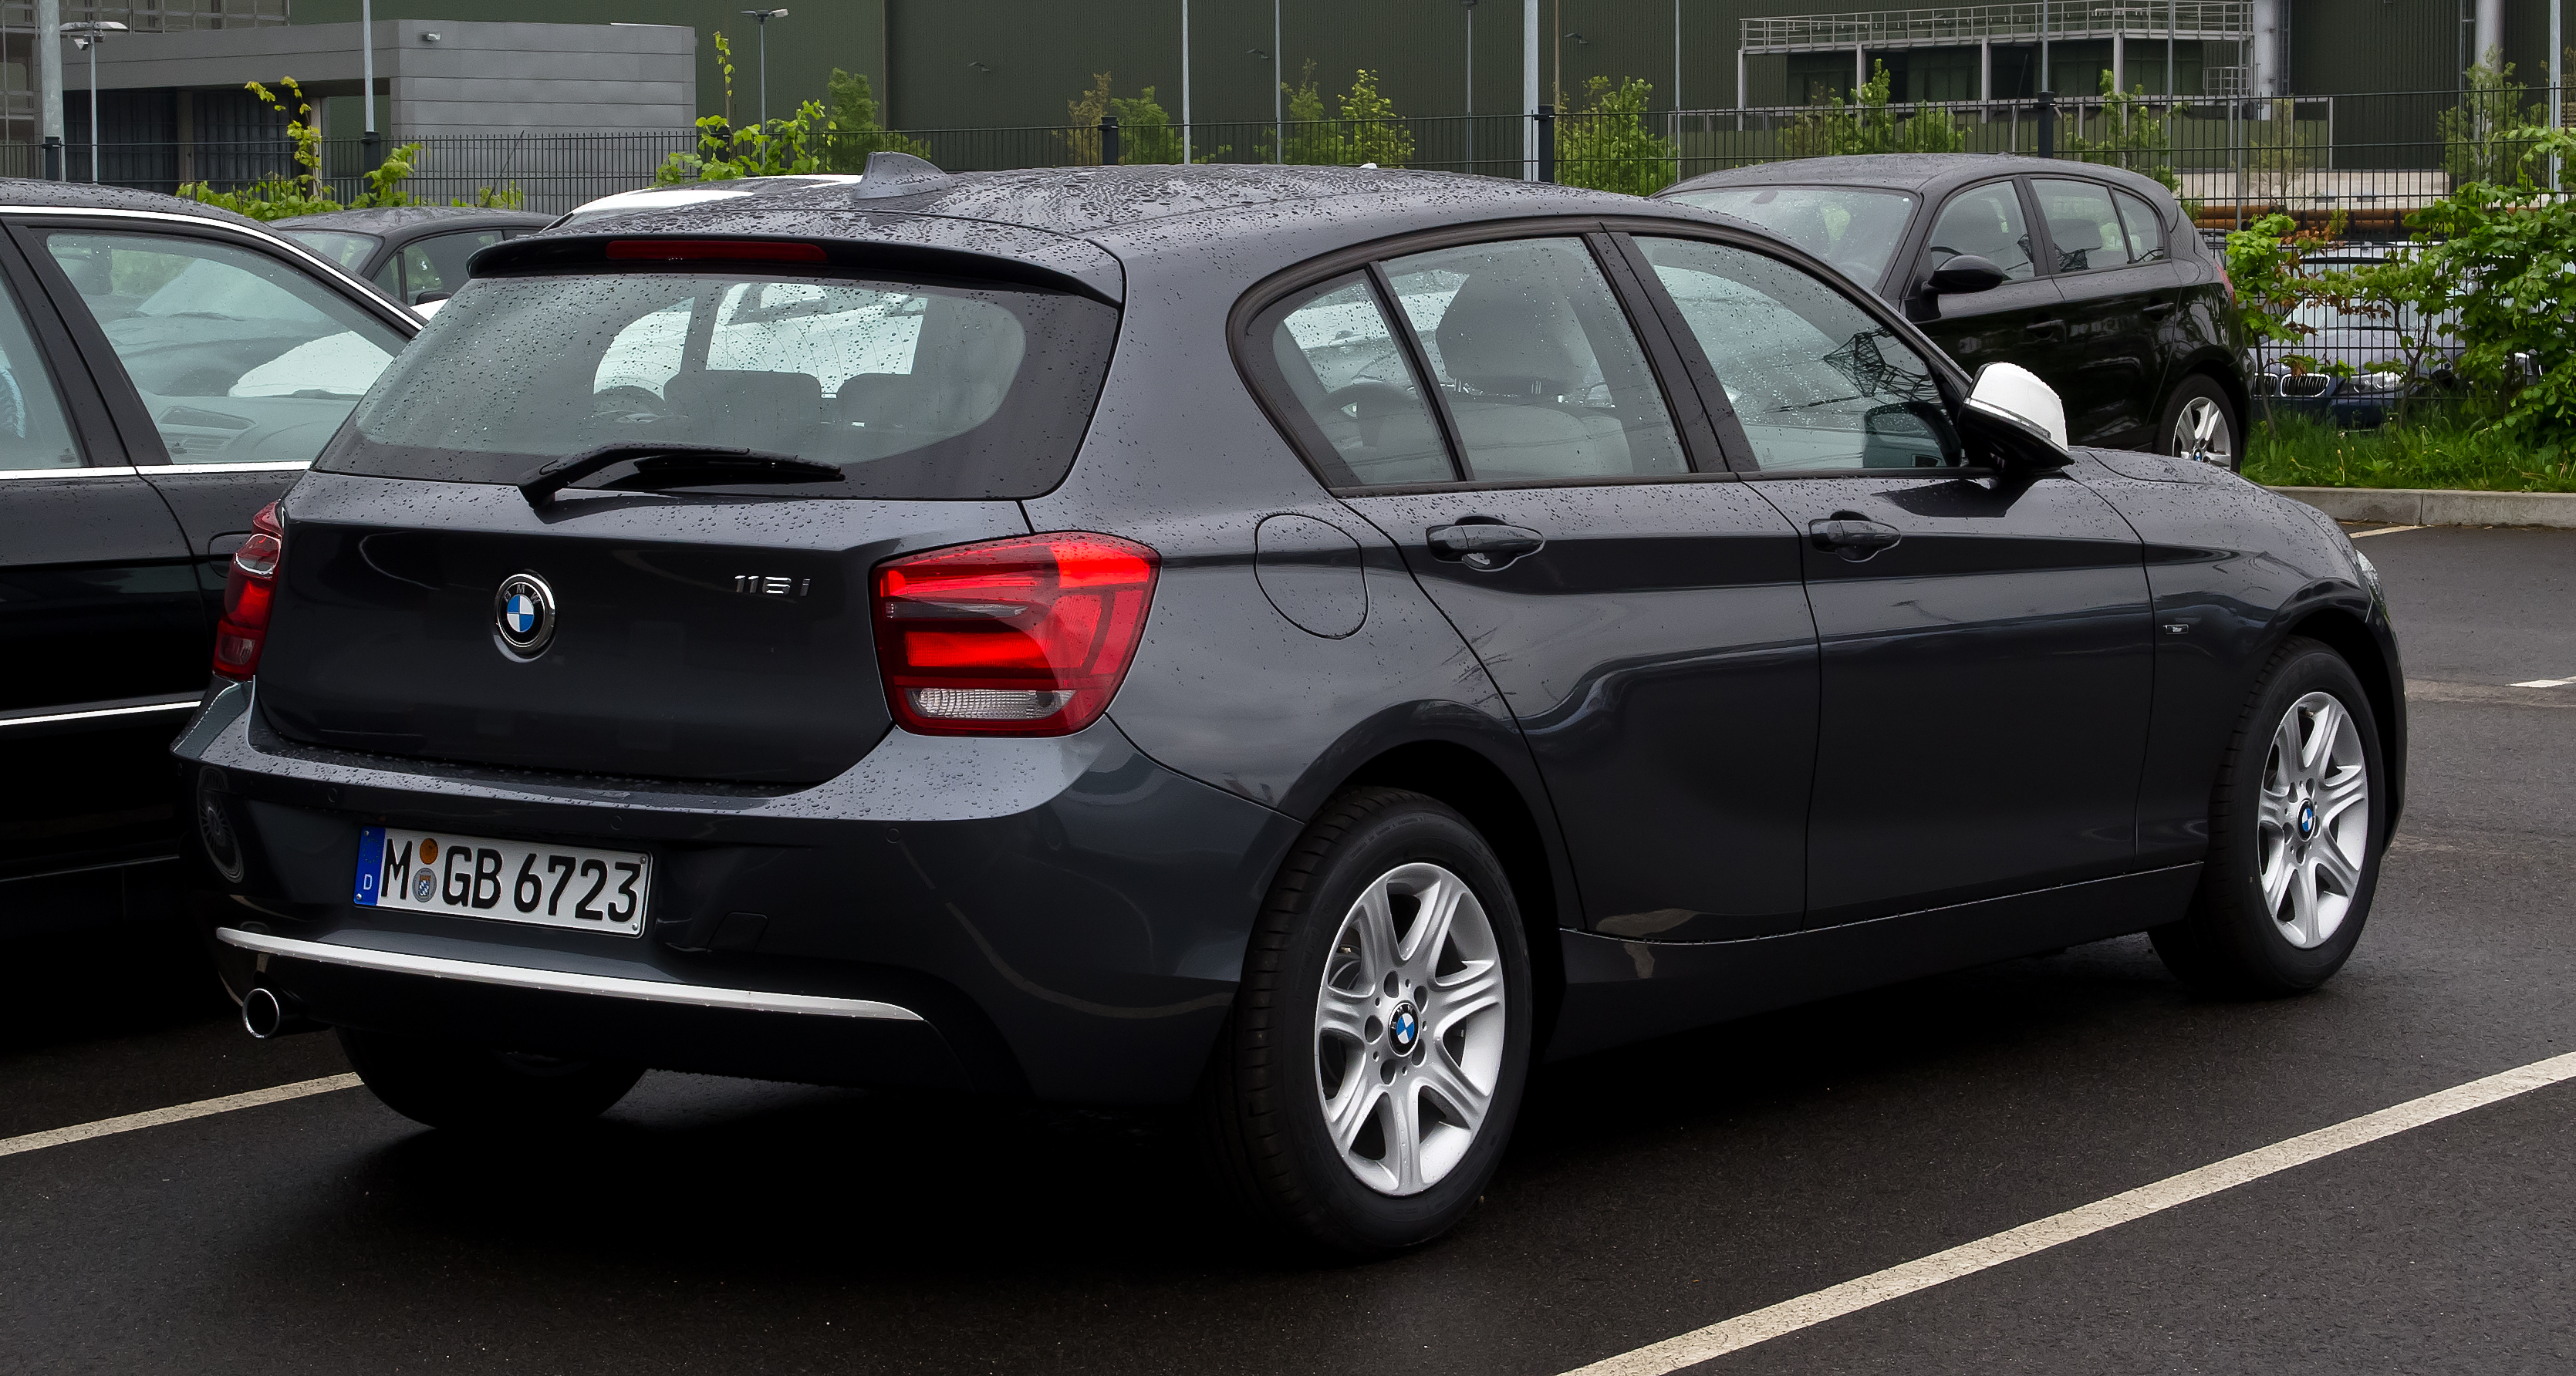 file bmw 116i urban line f20 heckansicht 5 mai 2012 d wikimedia commons. Black Bedroom Furniture Sets. Home Design Ideas